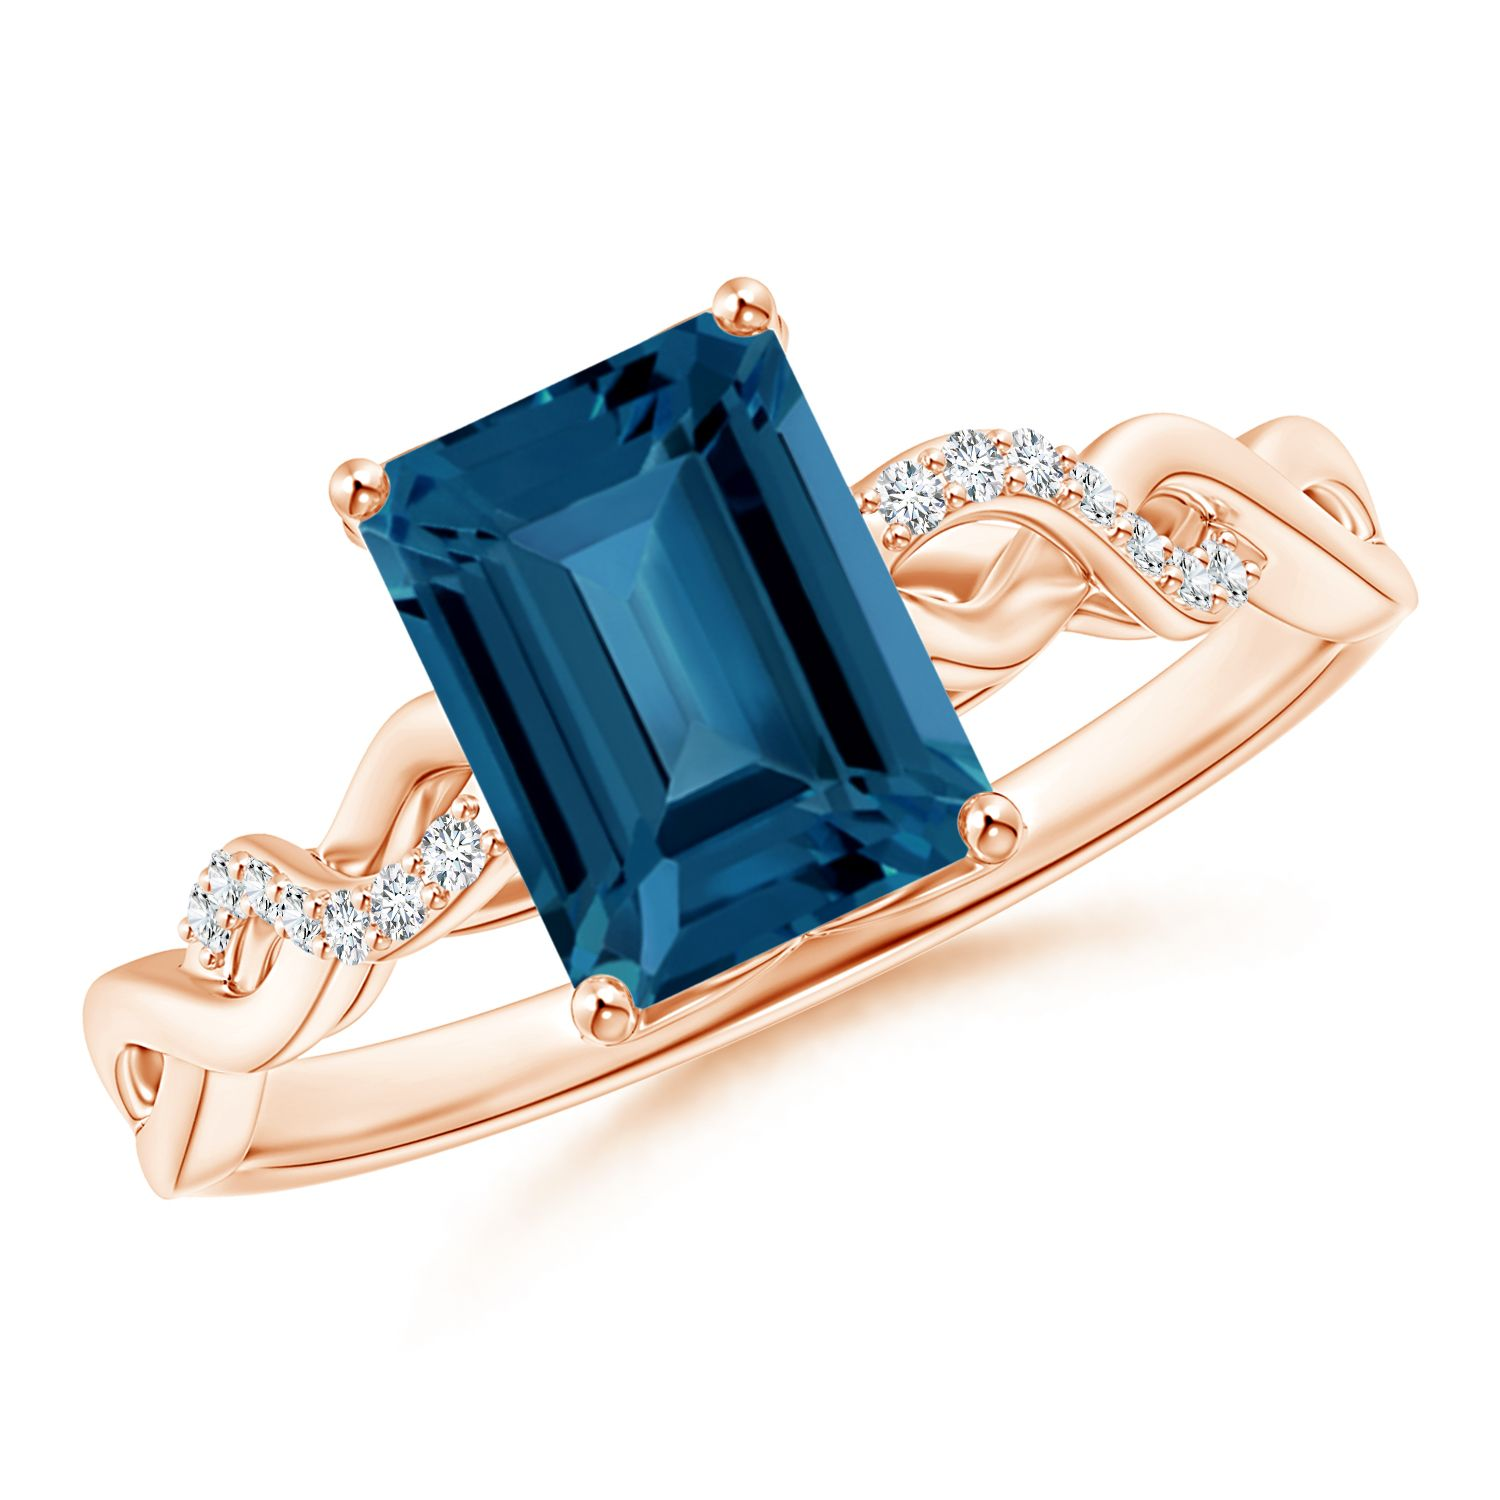 Angara Cushion London Blue Topaz Ring in Platinum LUZXdk